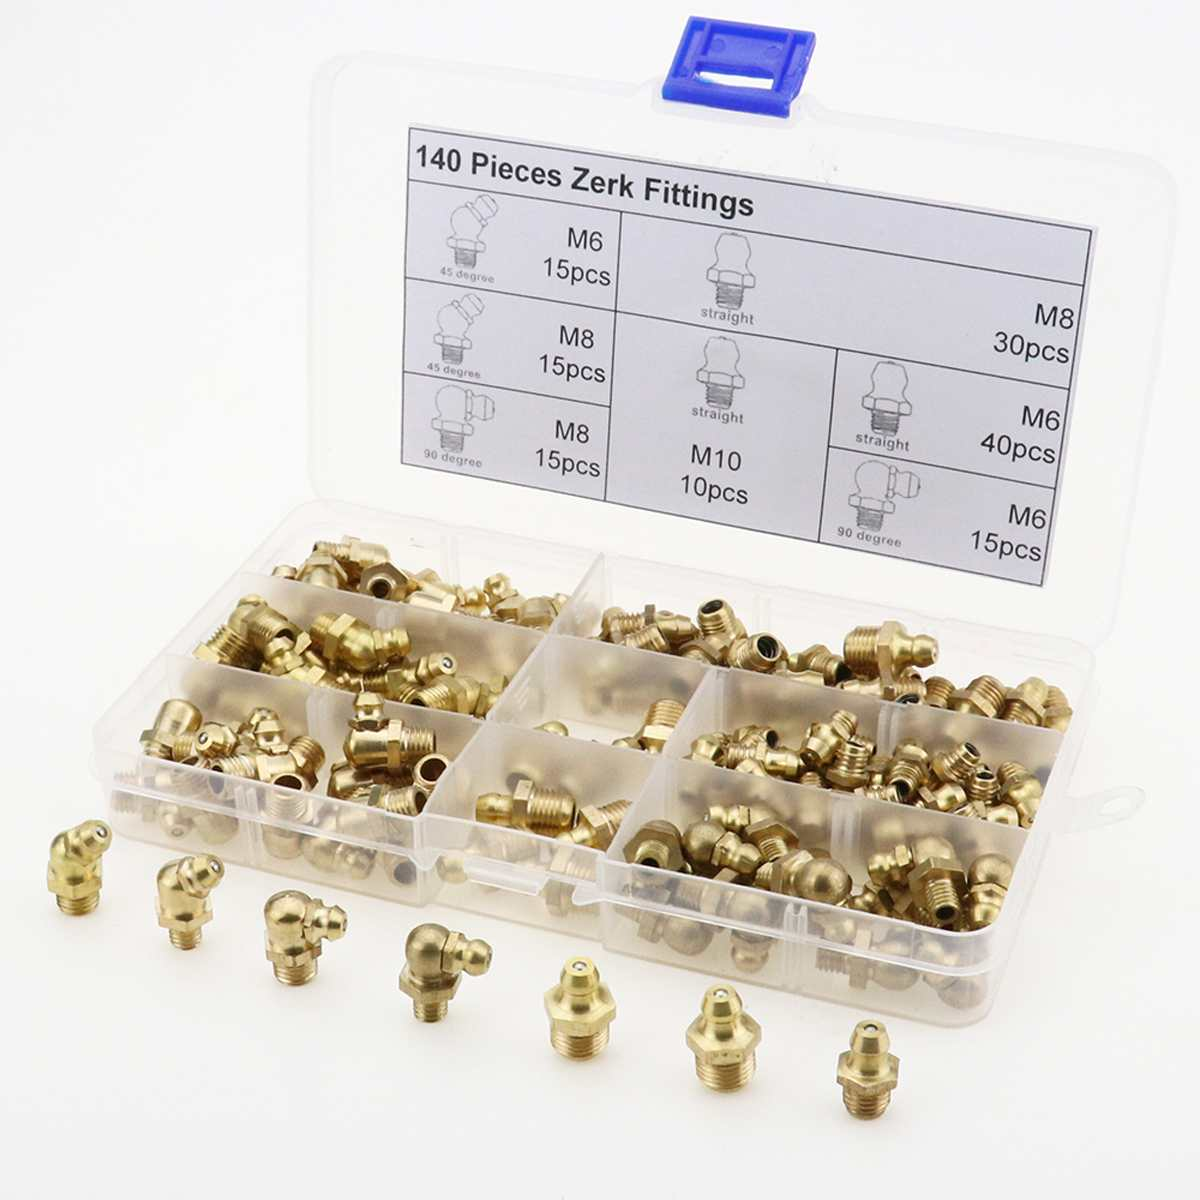 140pcs Grease Nipple Fitting M6/M8/M10 45° 90° 180° Metric Imperial Assorted Box Of Grease Nipples Brass Pipe Fittings